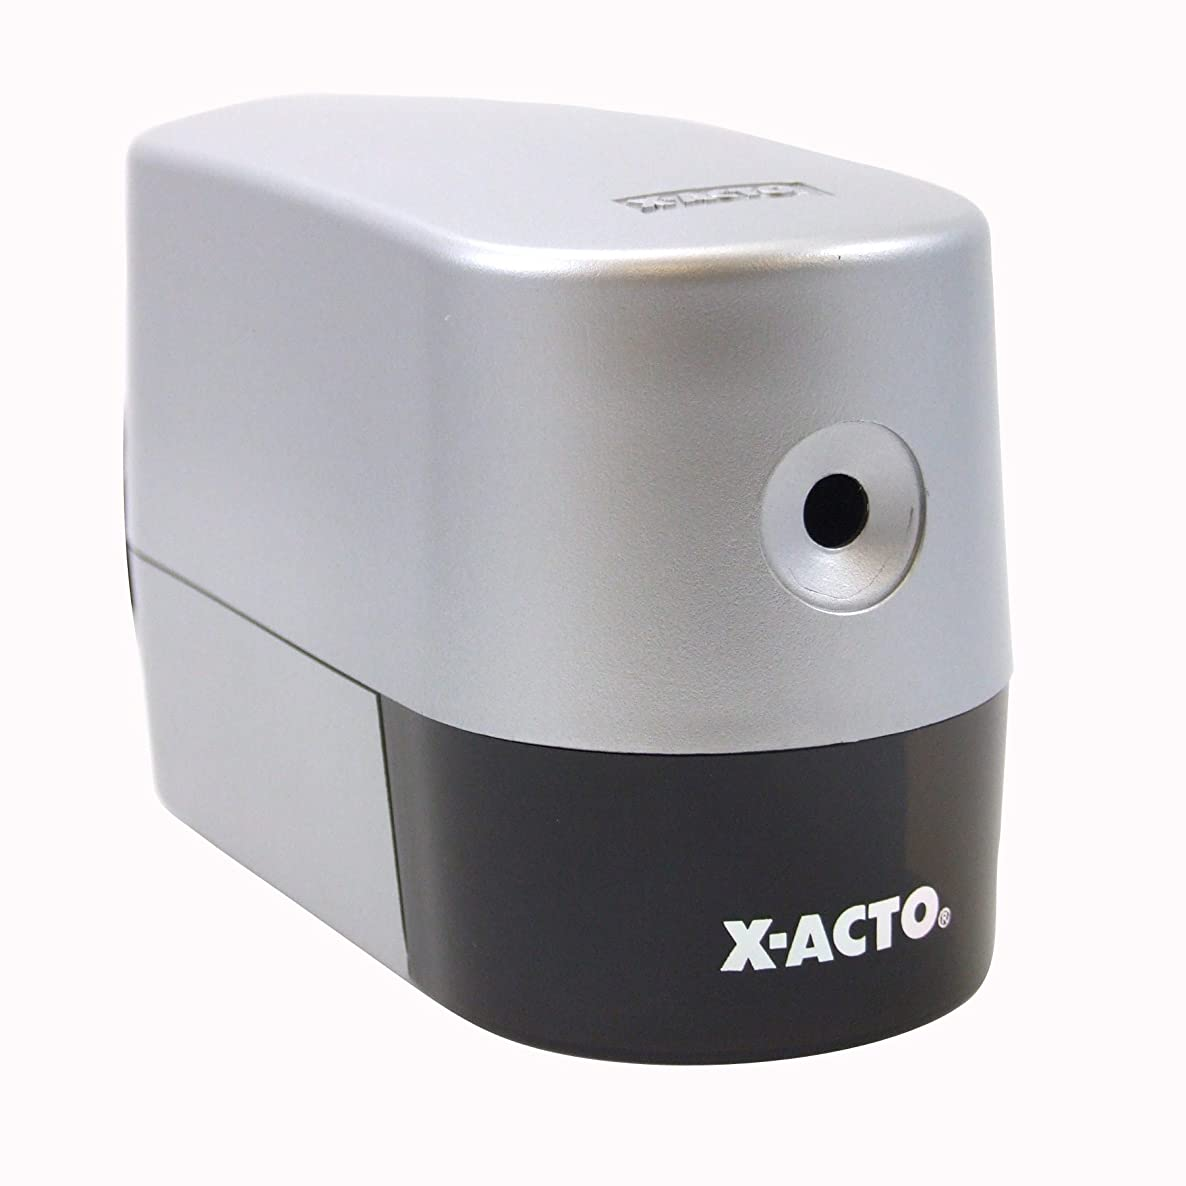 X-ACTO Model 2000 Electric Pencil Sharpener, Silver phpm4683015786